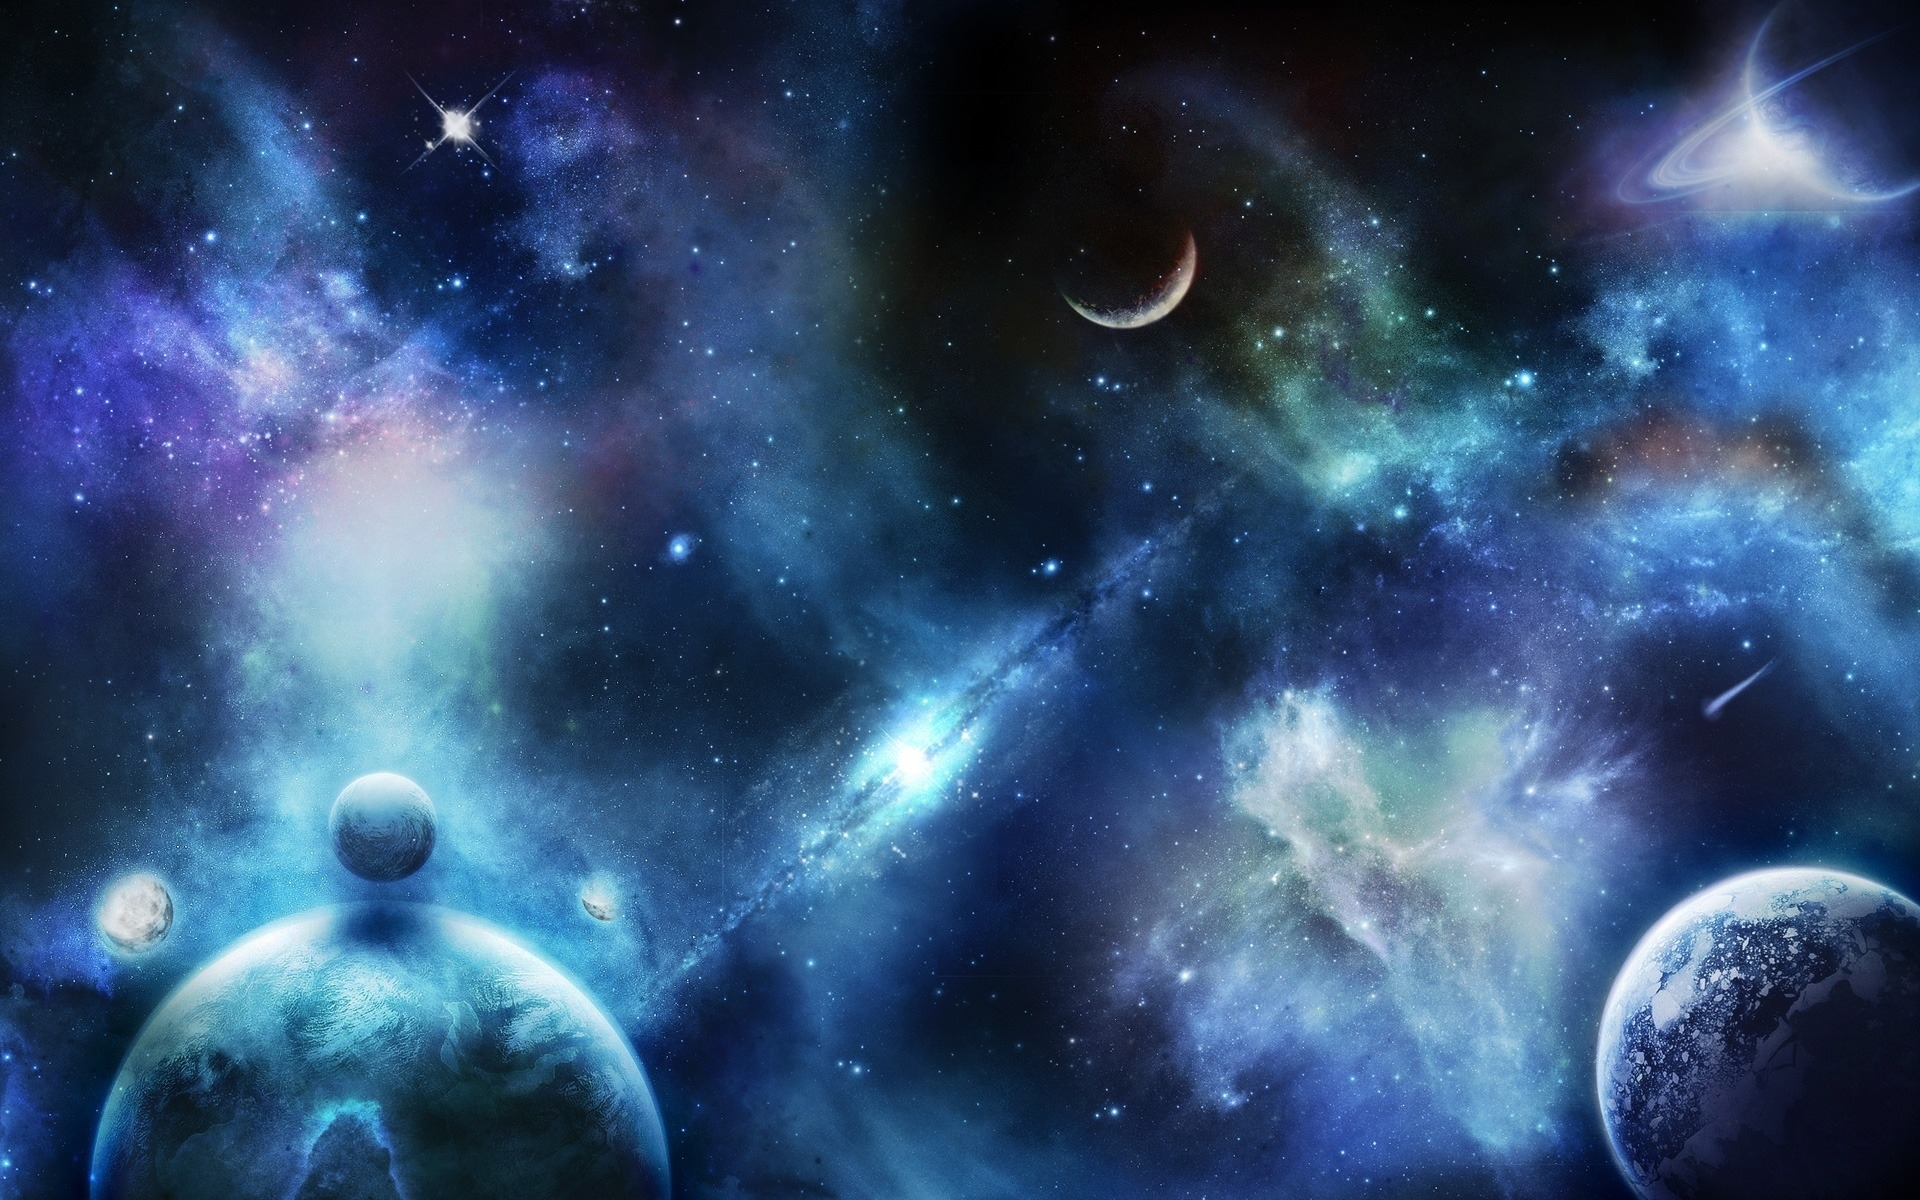 space wallpaper 1 1920x1080 Wallpaper space wallpaper 3 ...